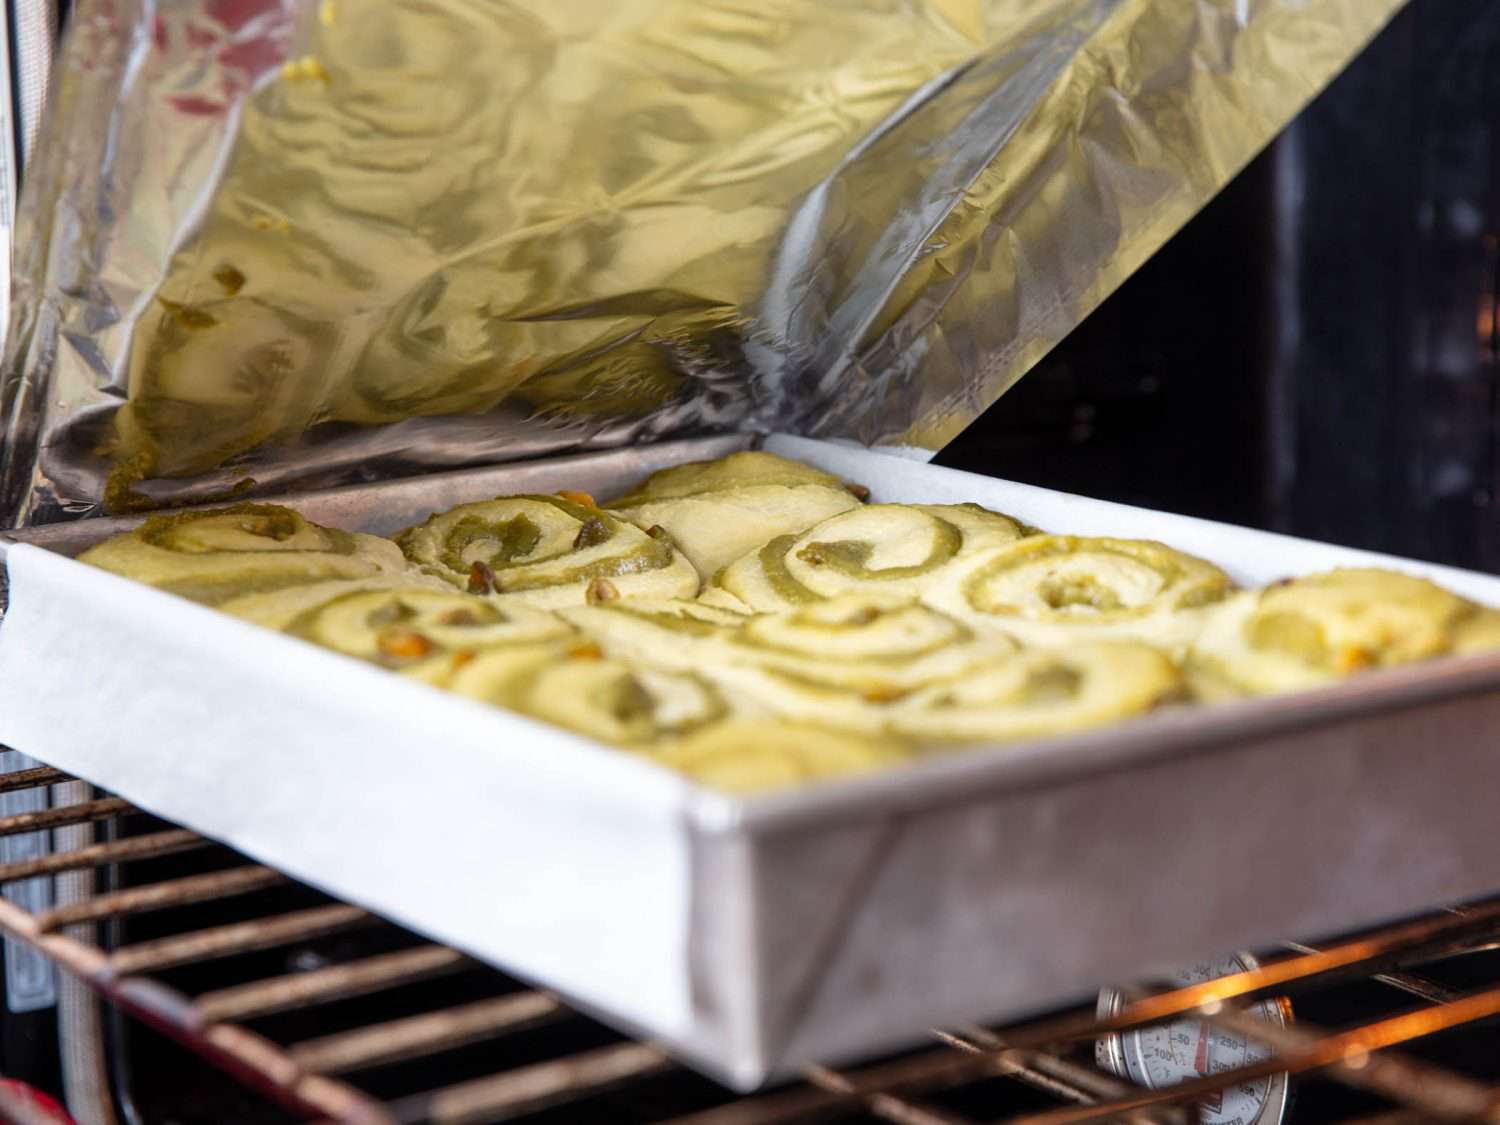 removing the foil on pale and puffy, semi-baked pistachio buns